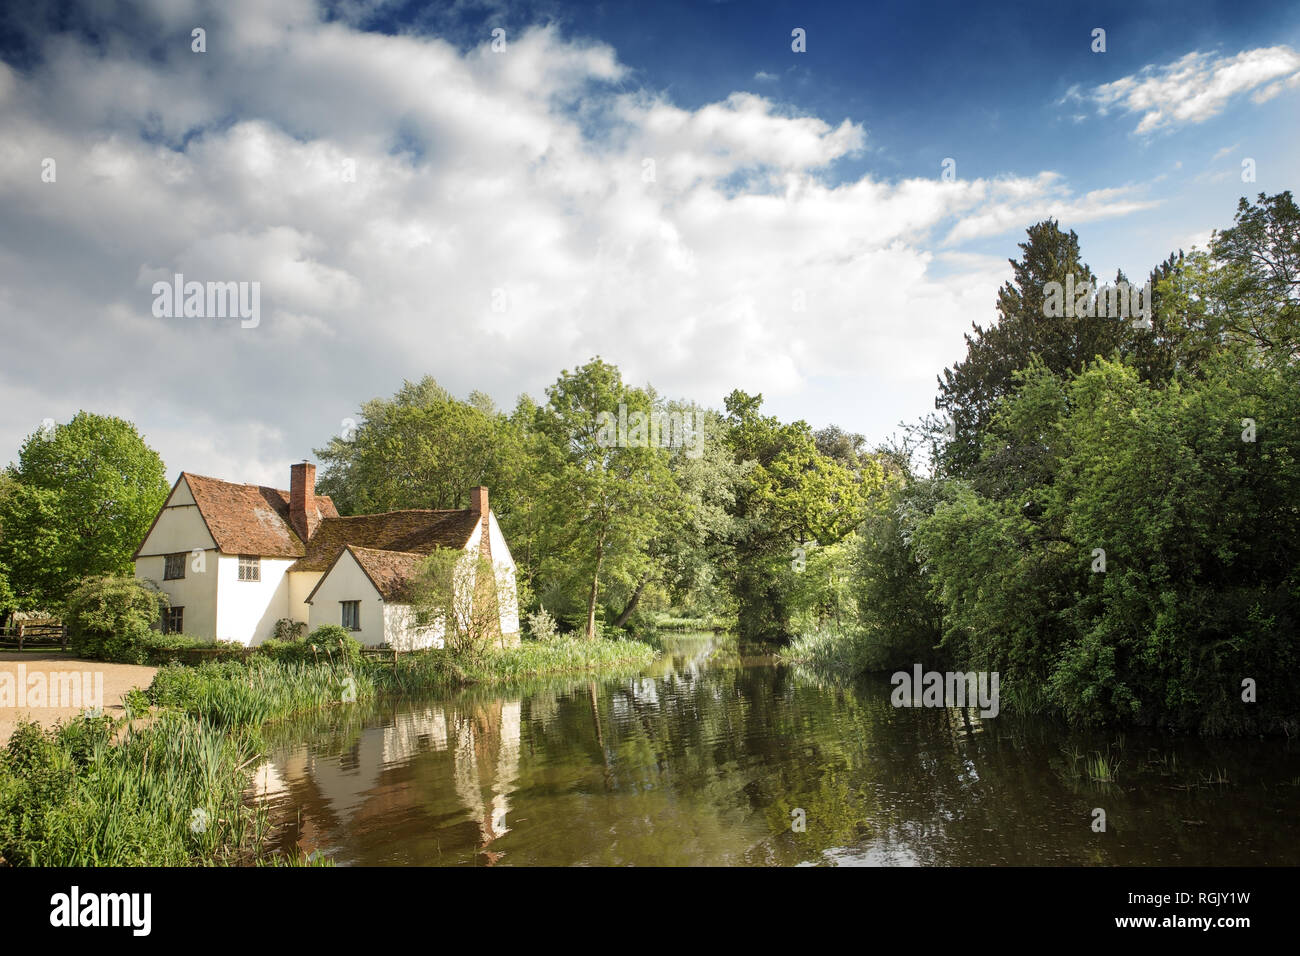 Contemporary view of Flatford Mill, the scene painted by John Constable in his painting 'The Hay Wain' in the Dedham Vale district of East England Stock Photo